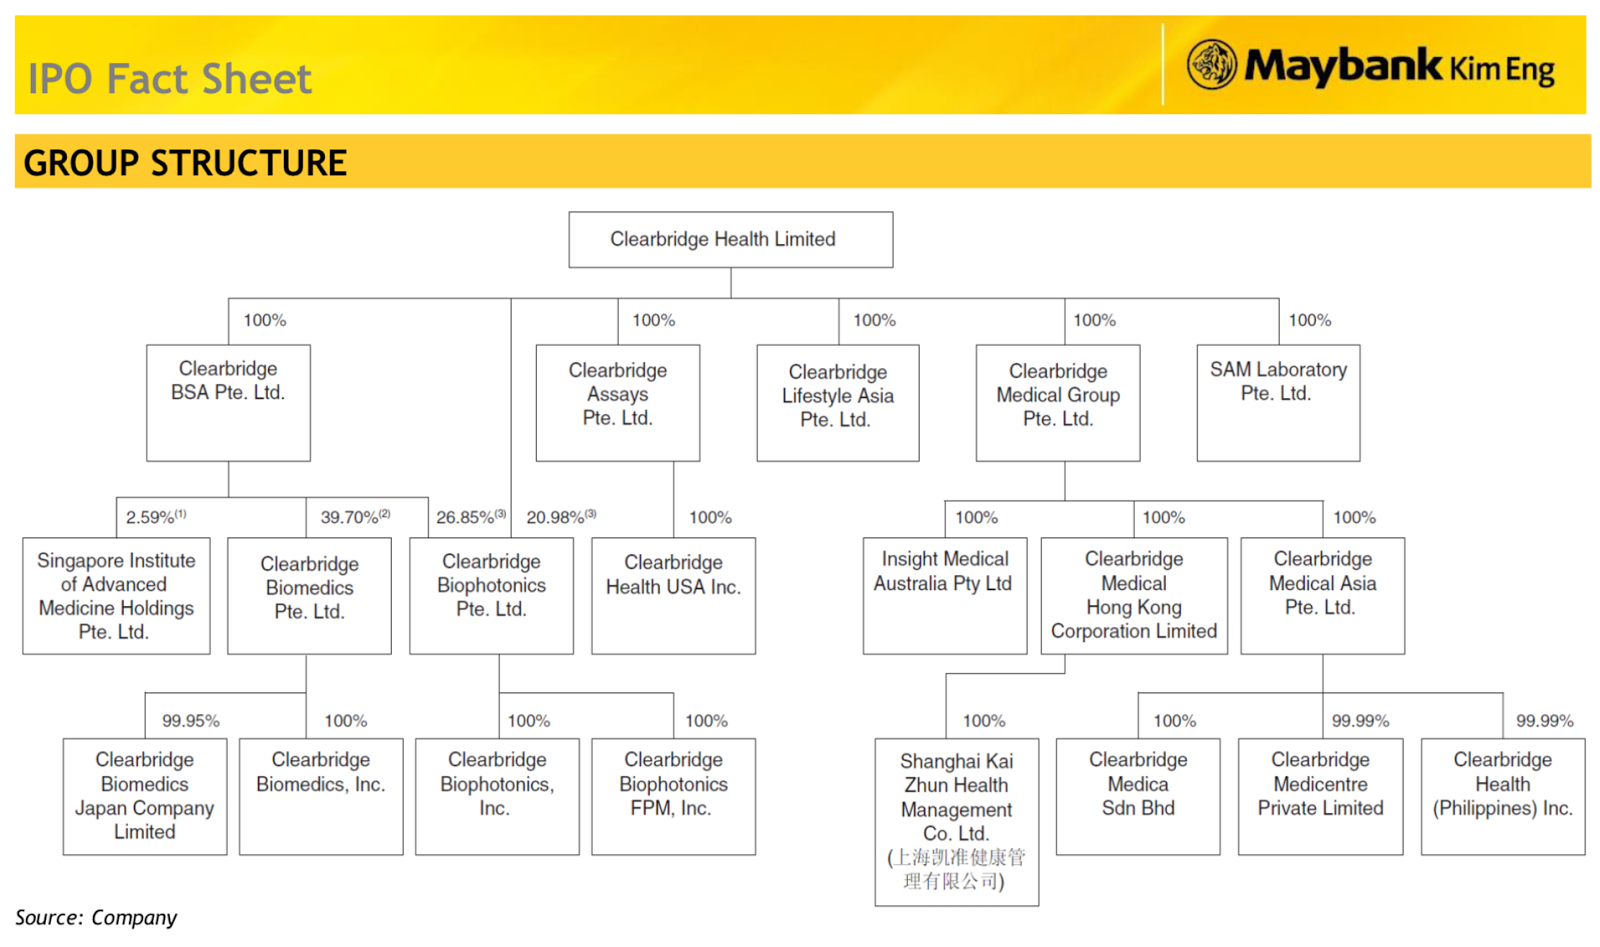 Clearbridge Health Limited Group Structure